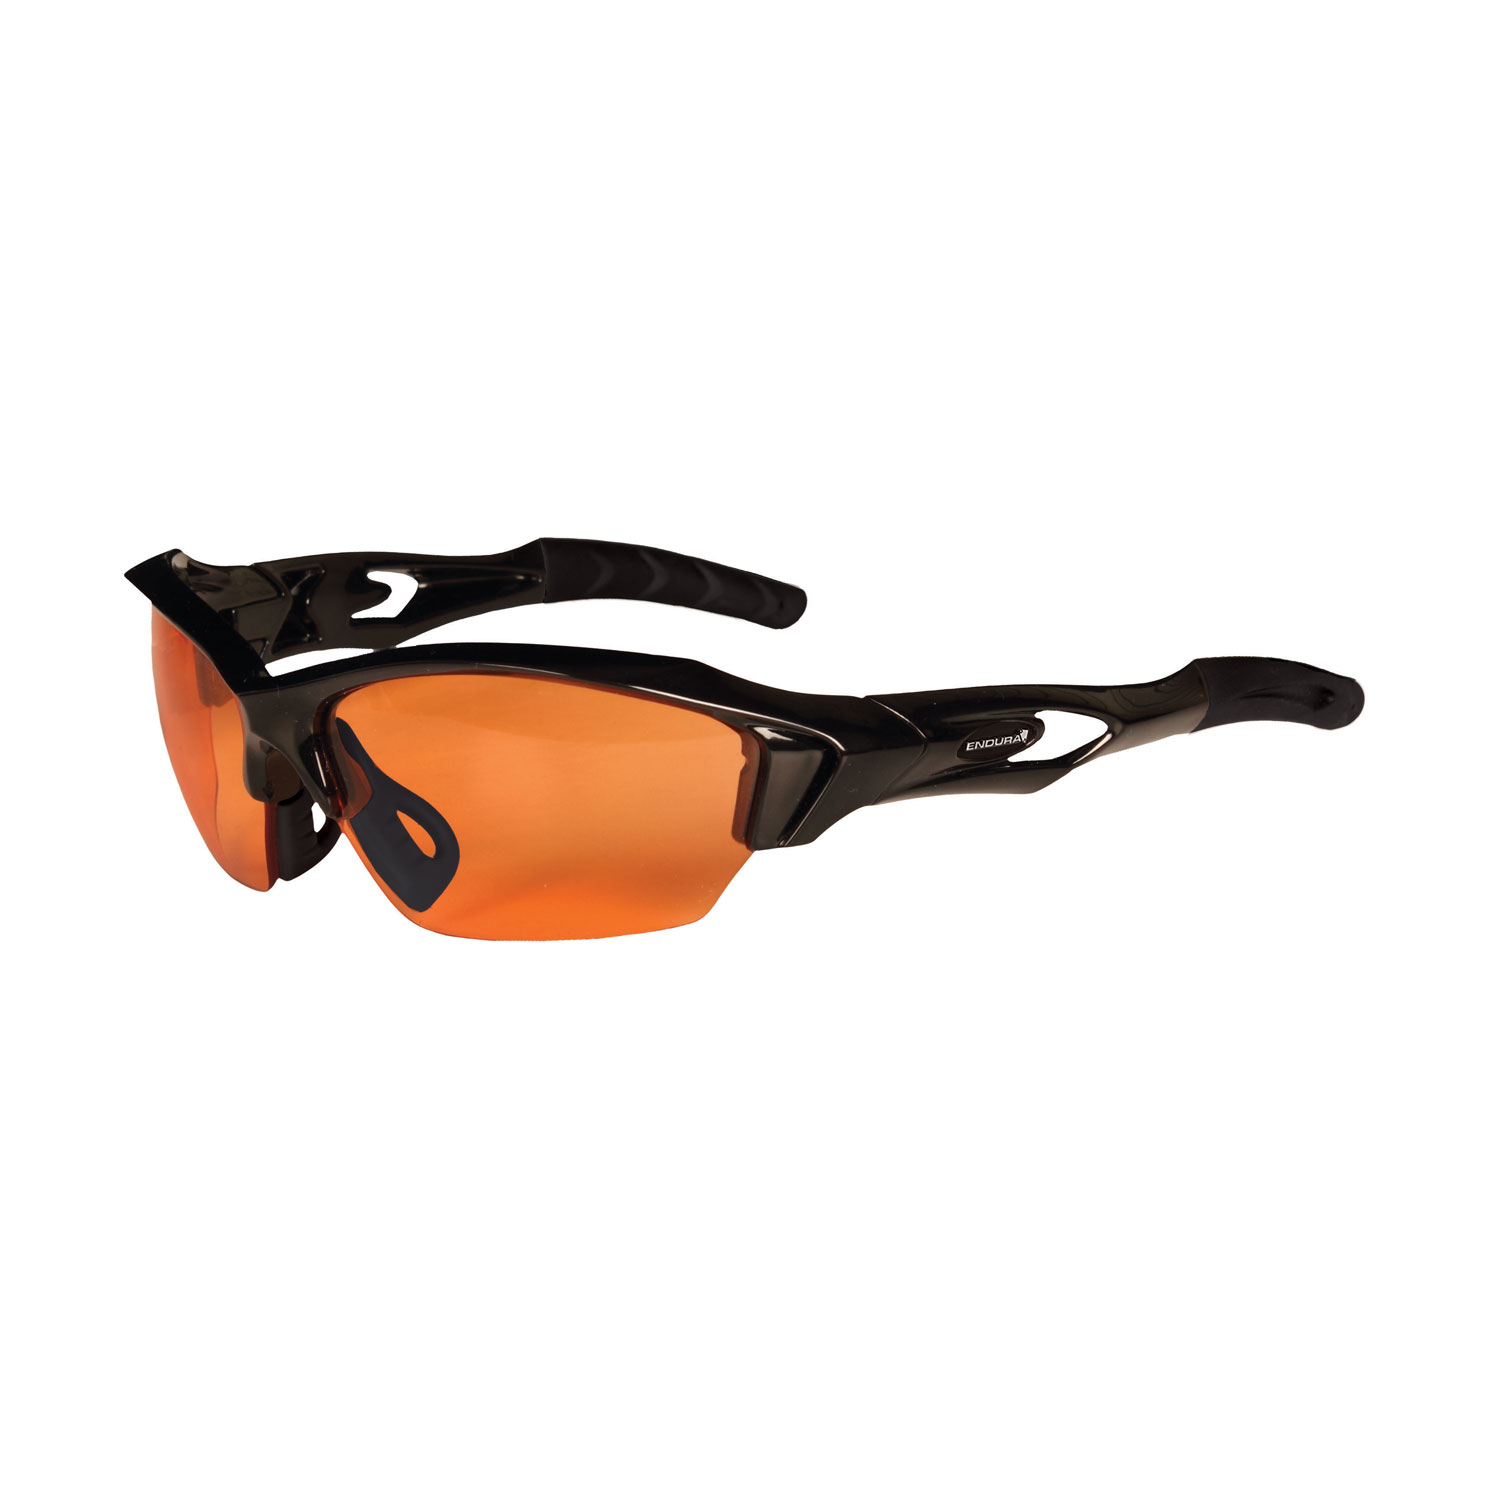 Guppy Glasses Black